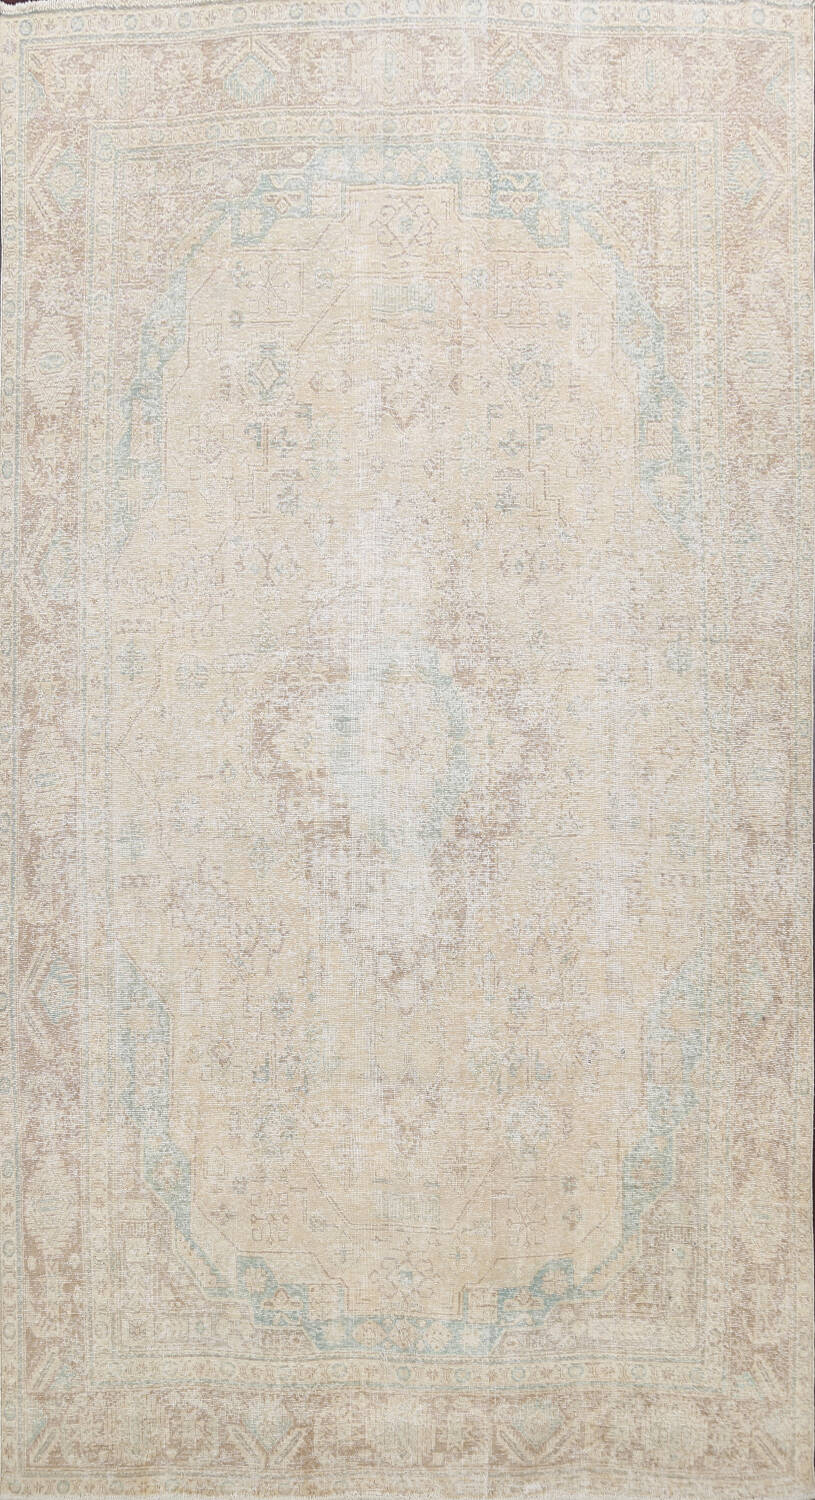 Antique Muted Distressed Tabriz Persian Area Rug 9x13 image 1